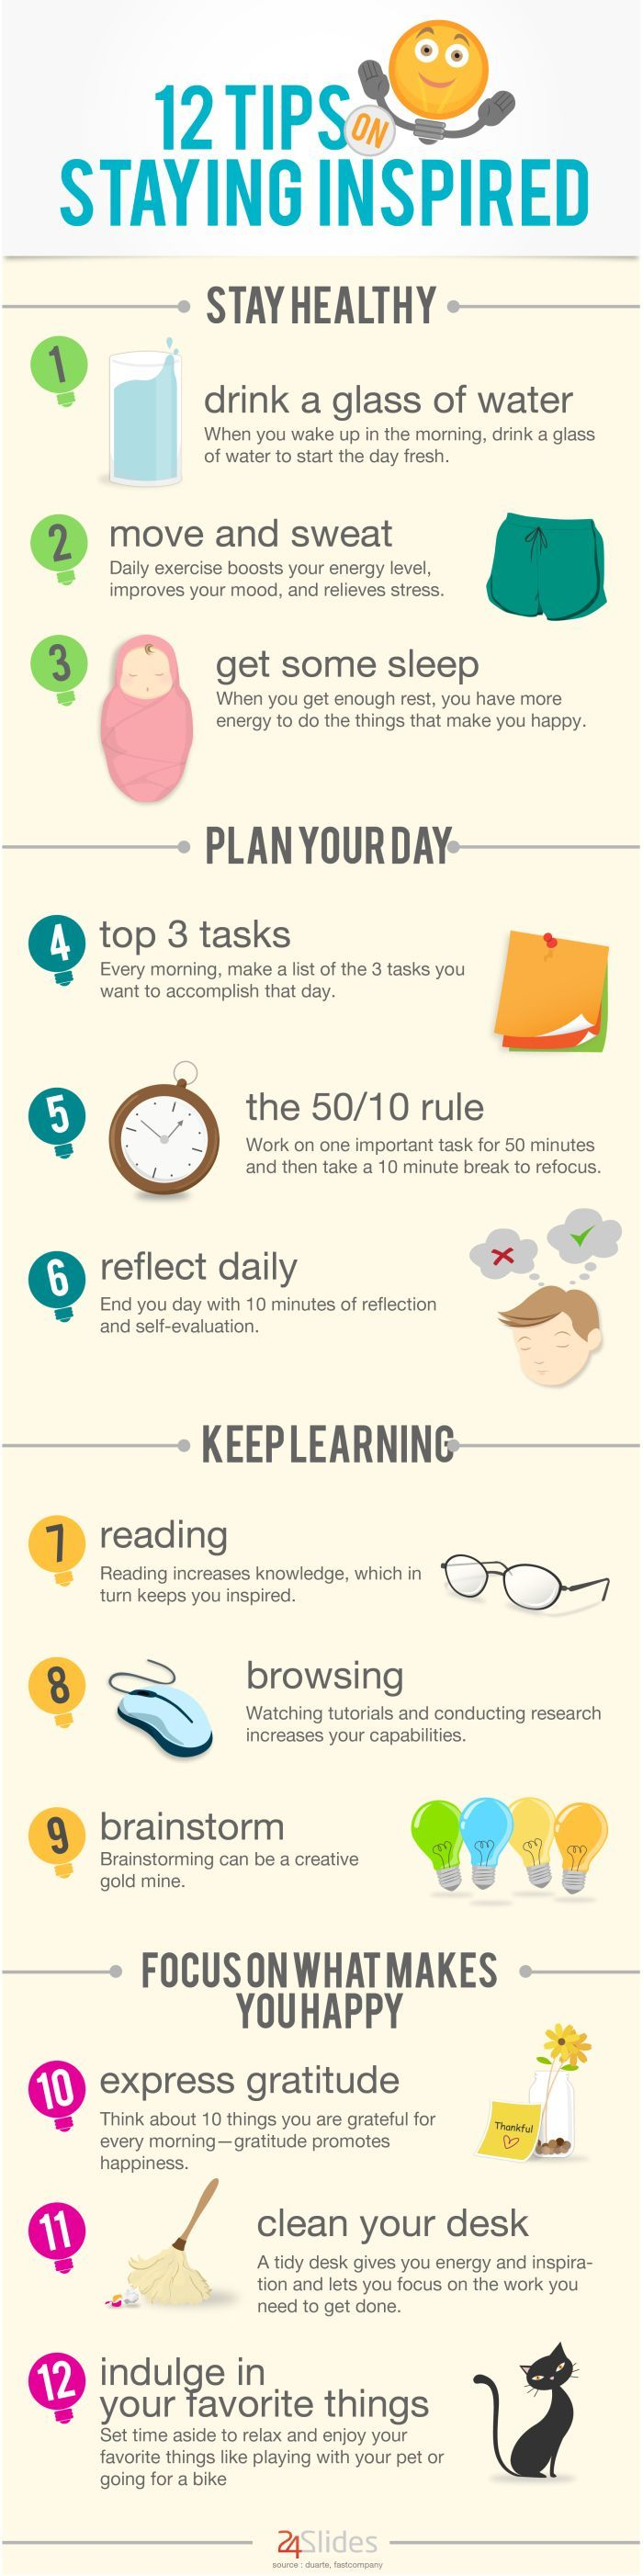 Tips for staying inspired motivated